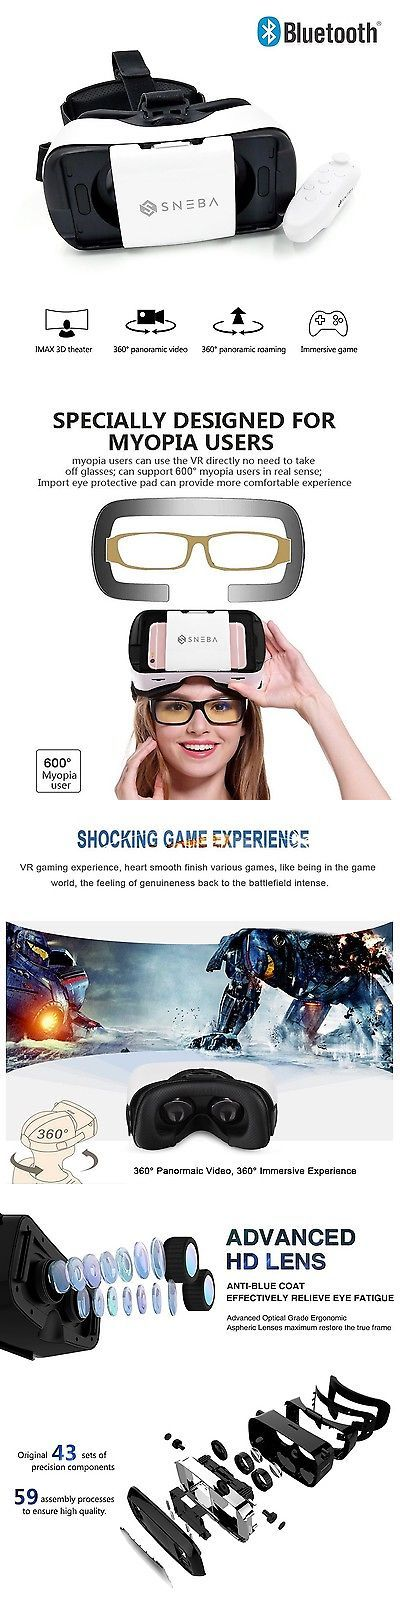 3D TV Glasses and Accessories: Sneba 3D Vr Glasses- Premium Virtual Reality Headset Volume And Control Dial Ad... BUY IT NOW ONLY: $56.24